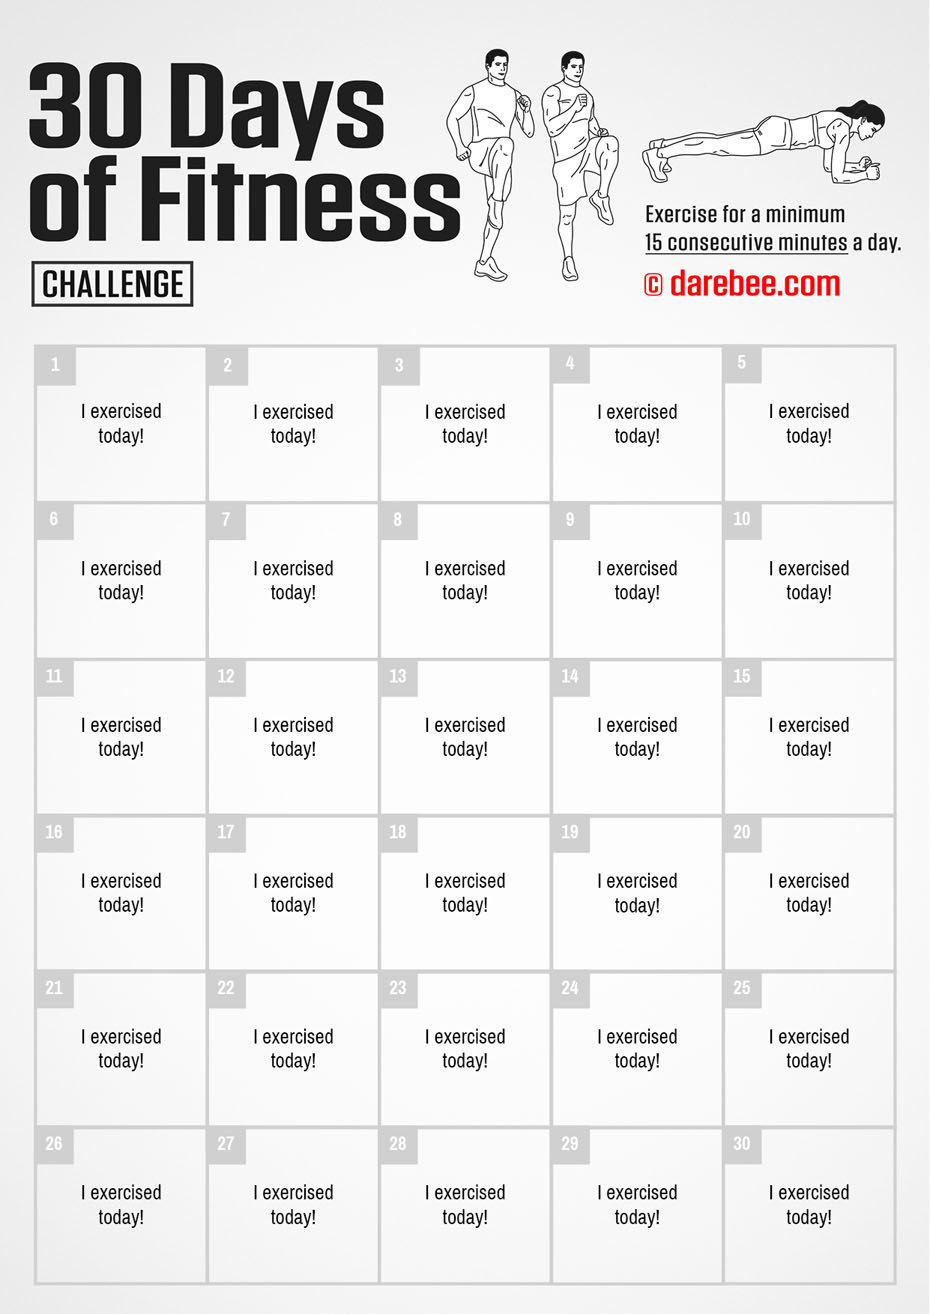 30 Days Of Fitness throughout 30 Day Fitness Calendar